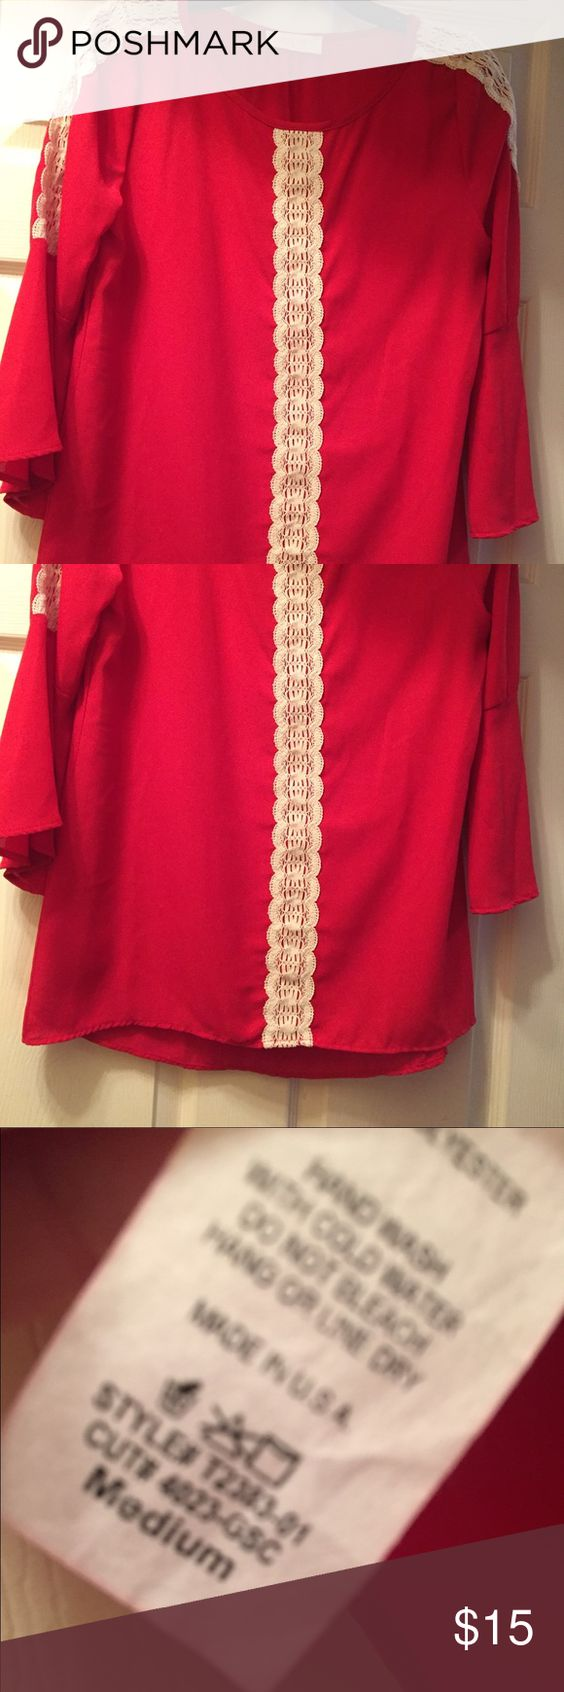 Boutique style top Pink bell sleeved boutique top, barely worn Peach Love Tops Blouses